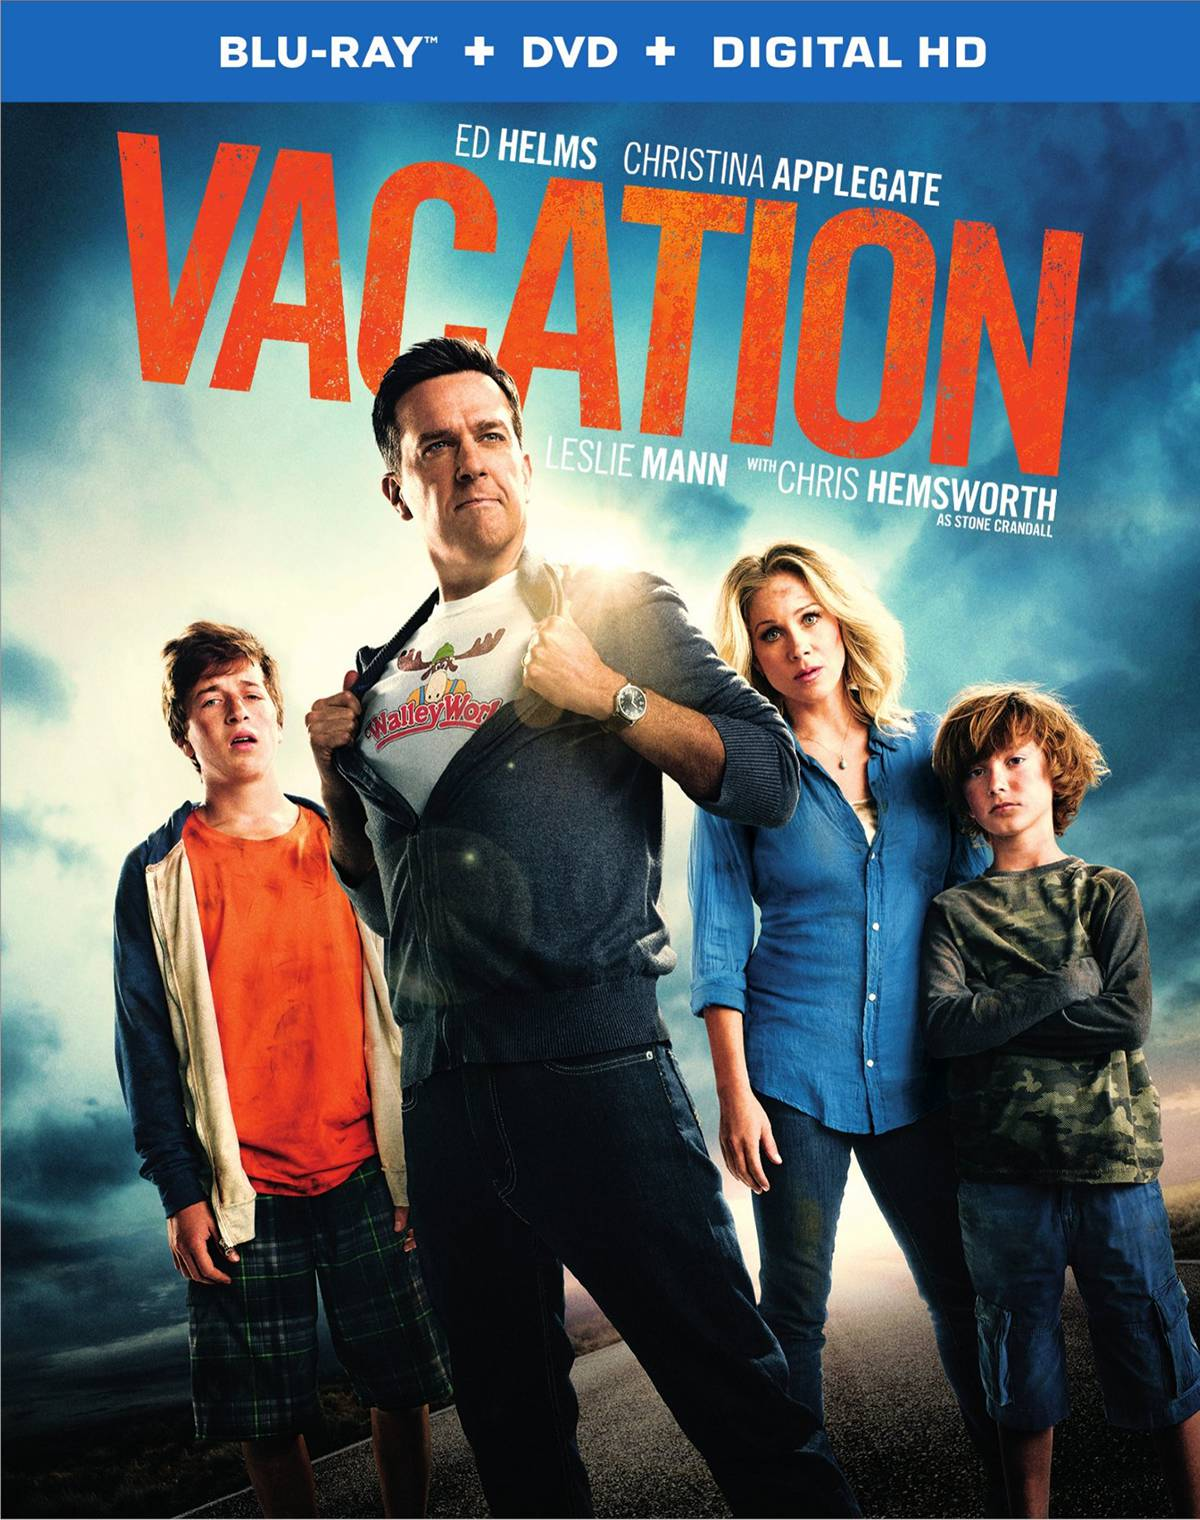 Griswold Family Vacation: Vacation Blu-ray Review, Vacation